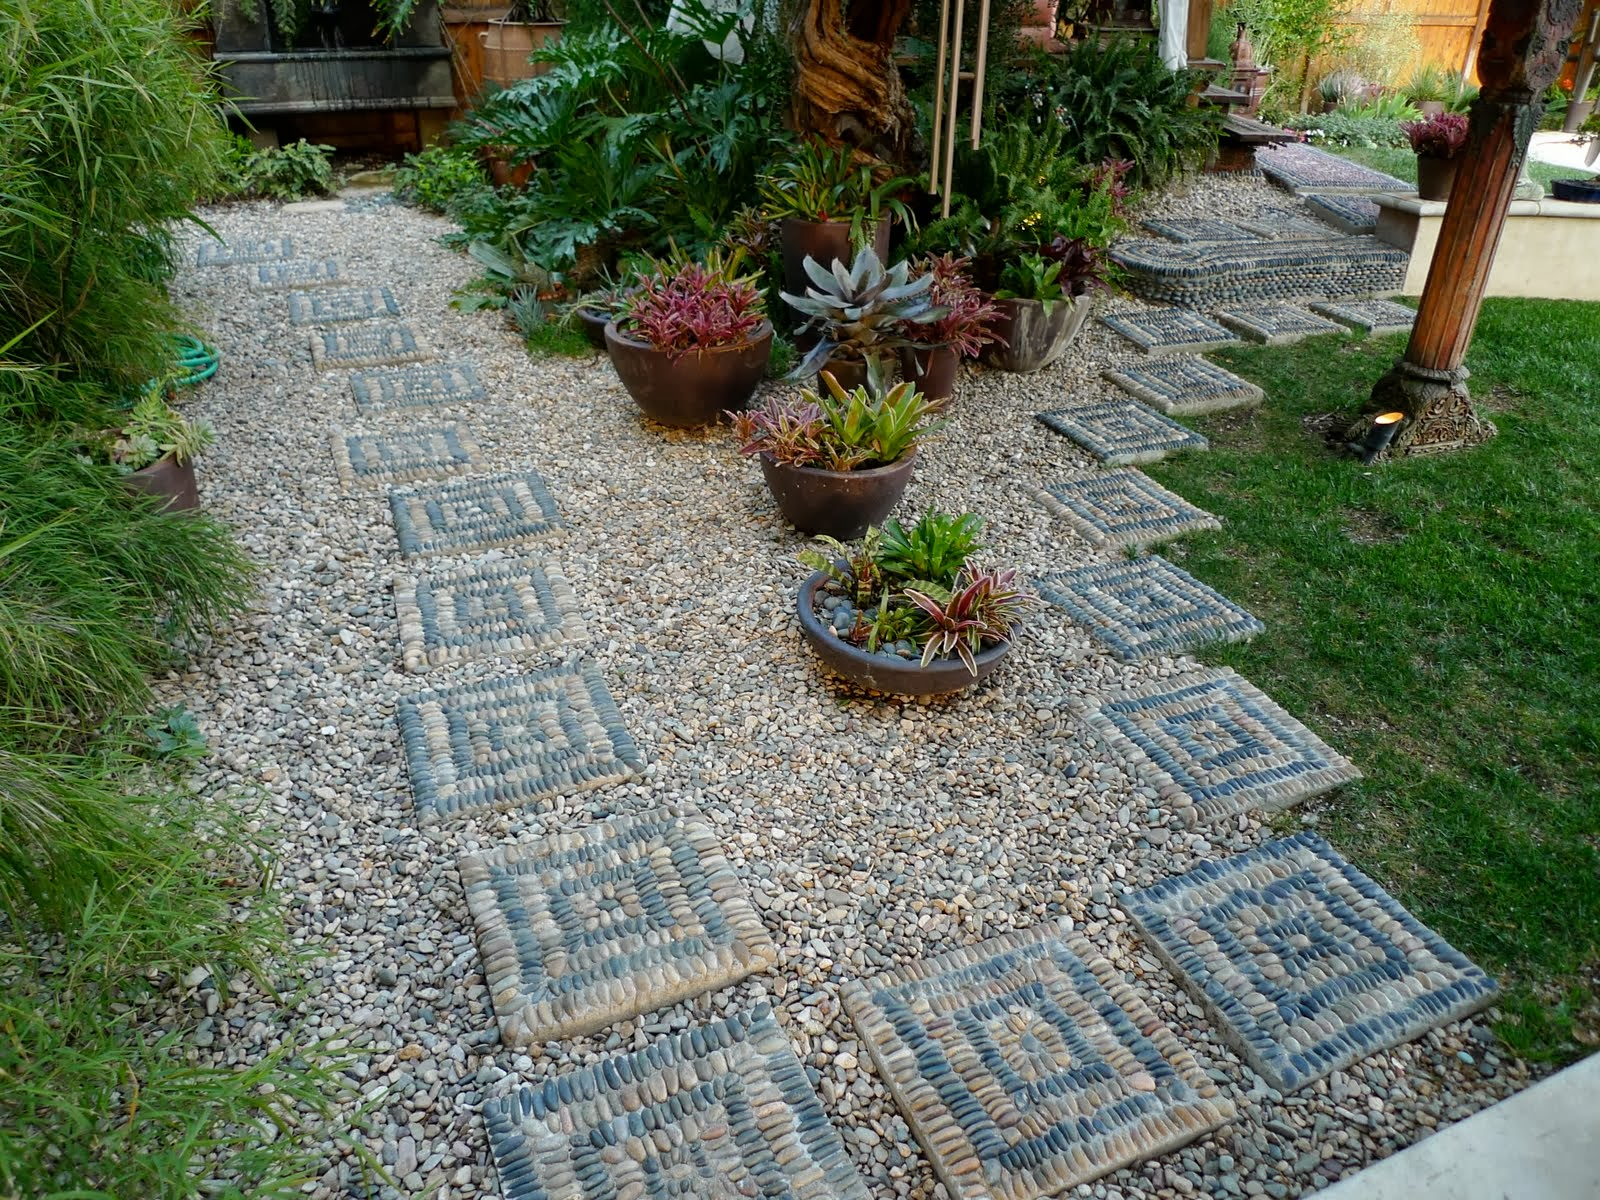 Outdoor mosaic tile designs. diy outdoor table ideas for garden ...